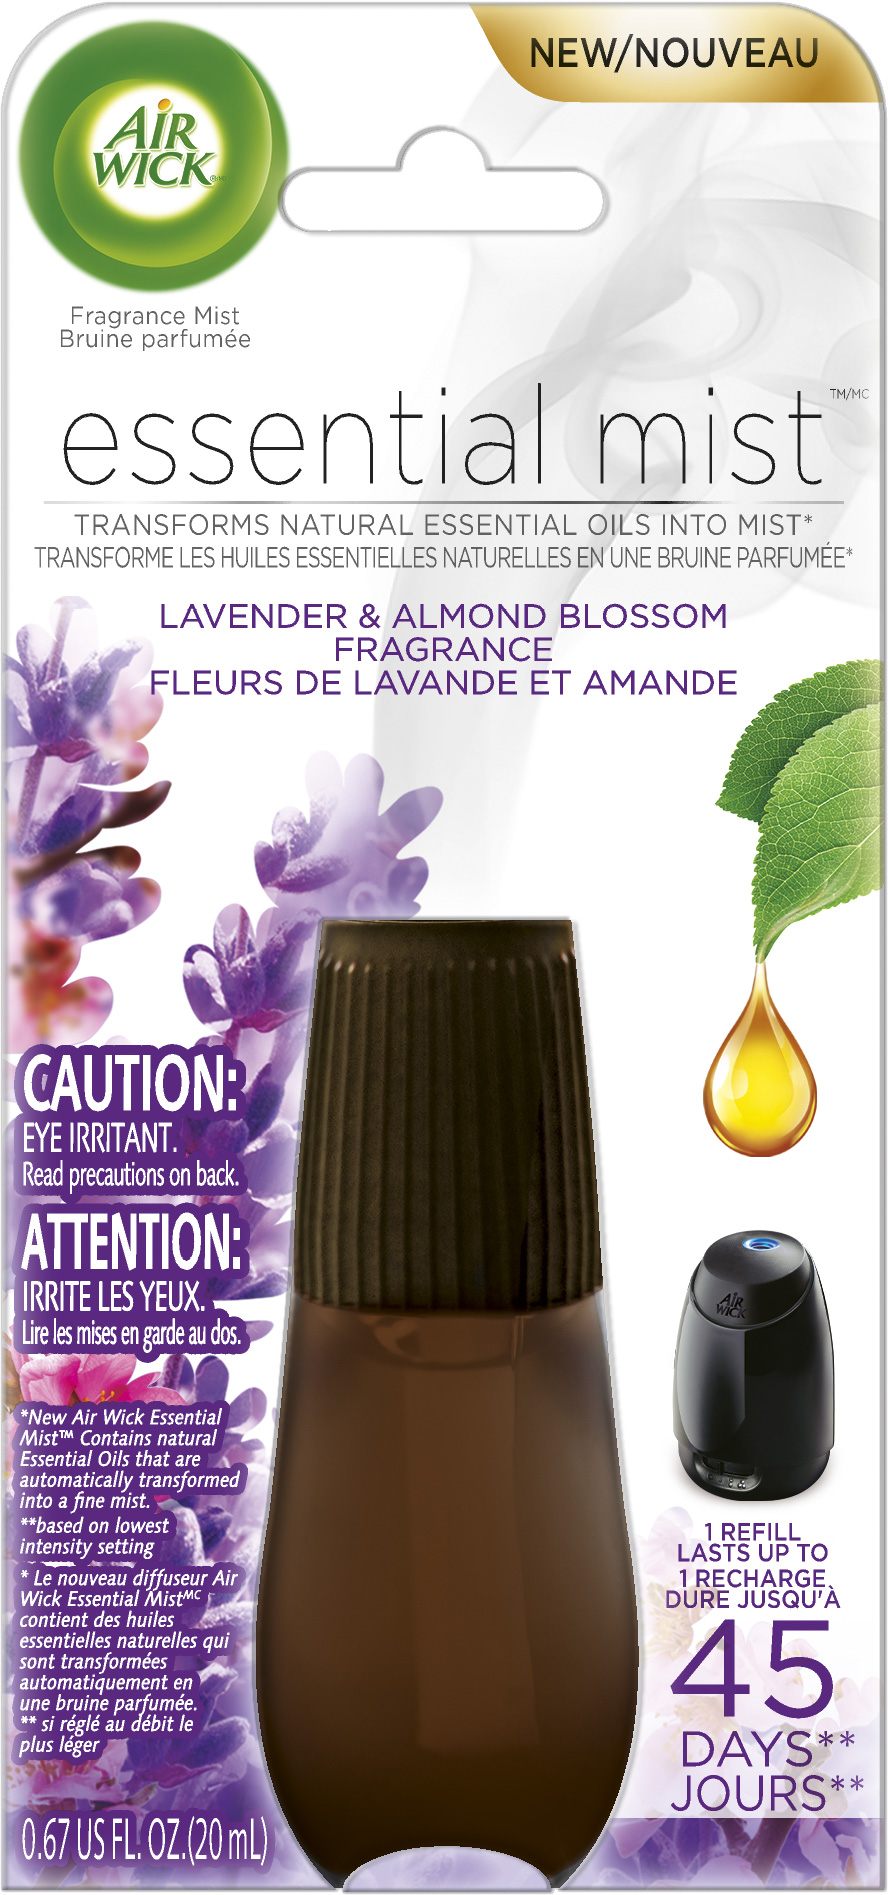 Read this before you jump on the essential oil bandwagon